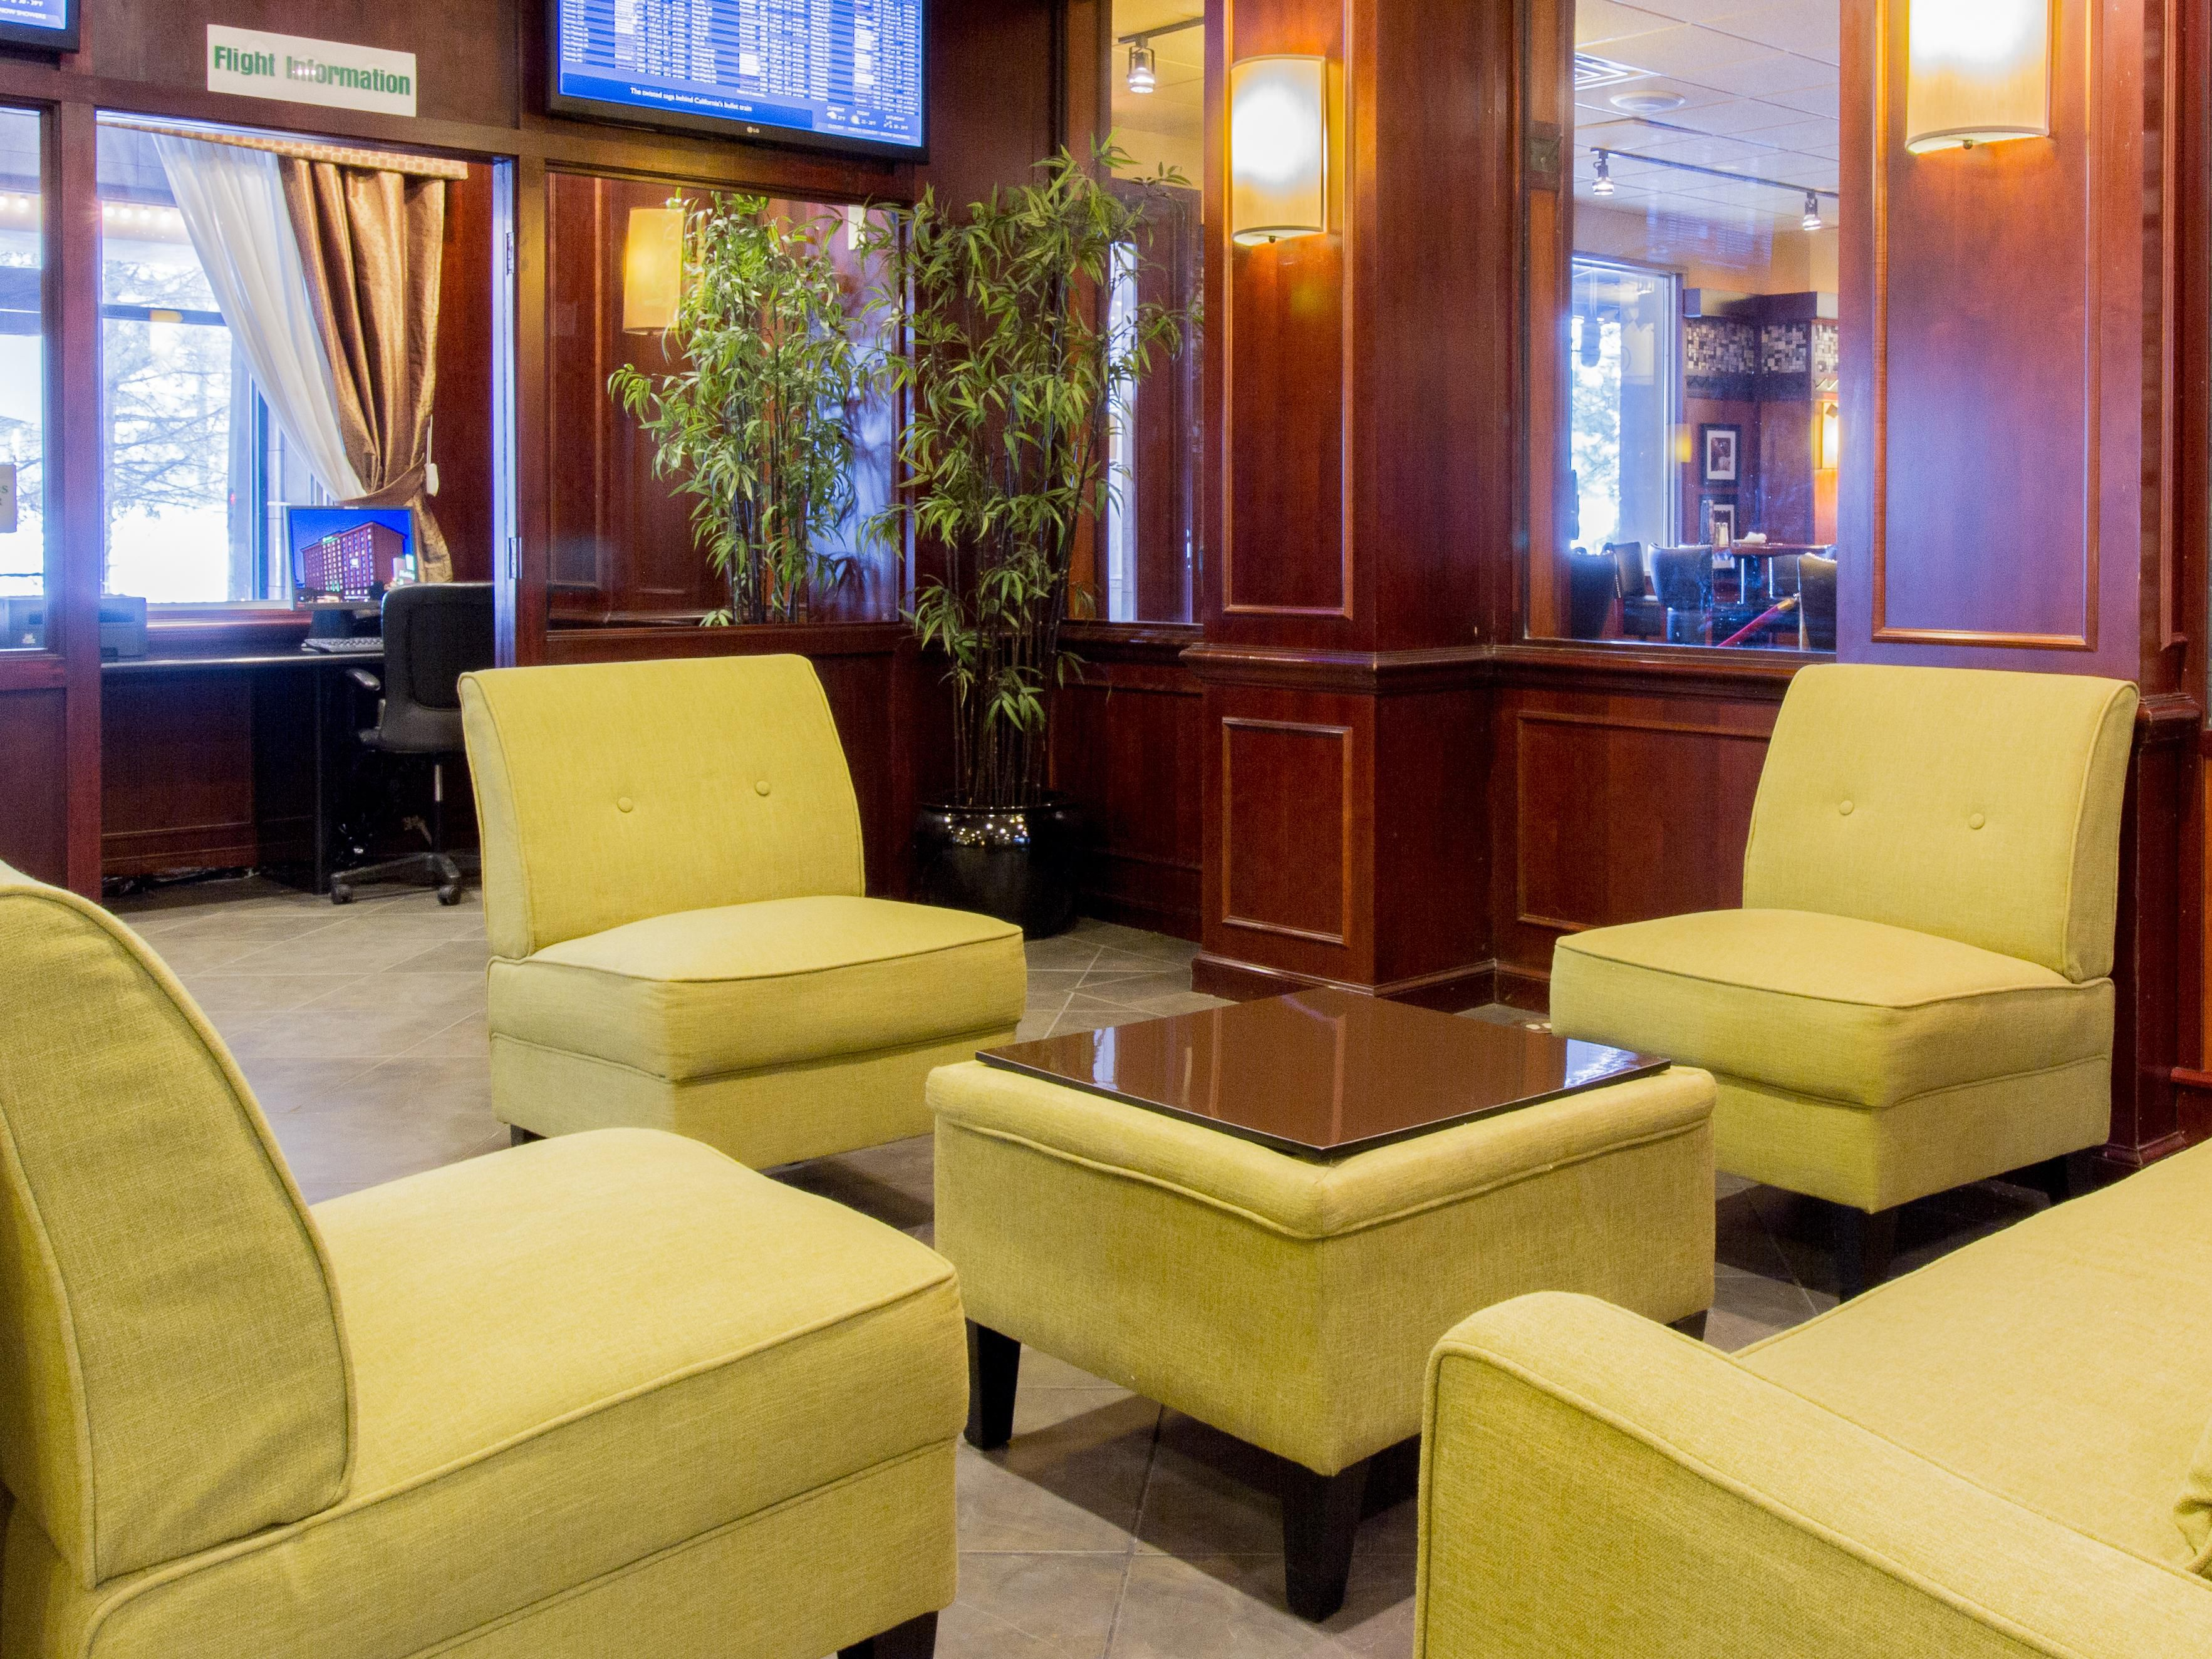 Lobby Lounge at Holiday Inn O'hare Airport Hotel